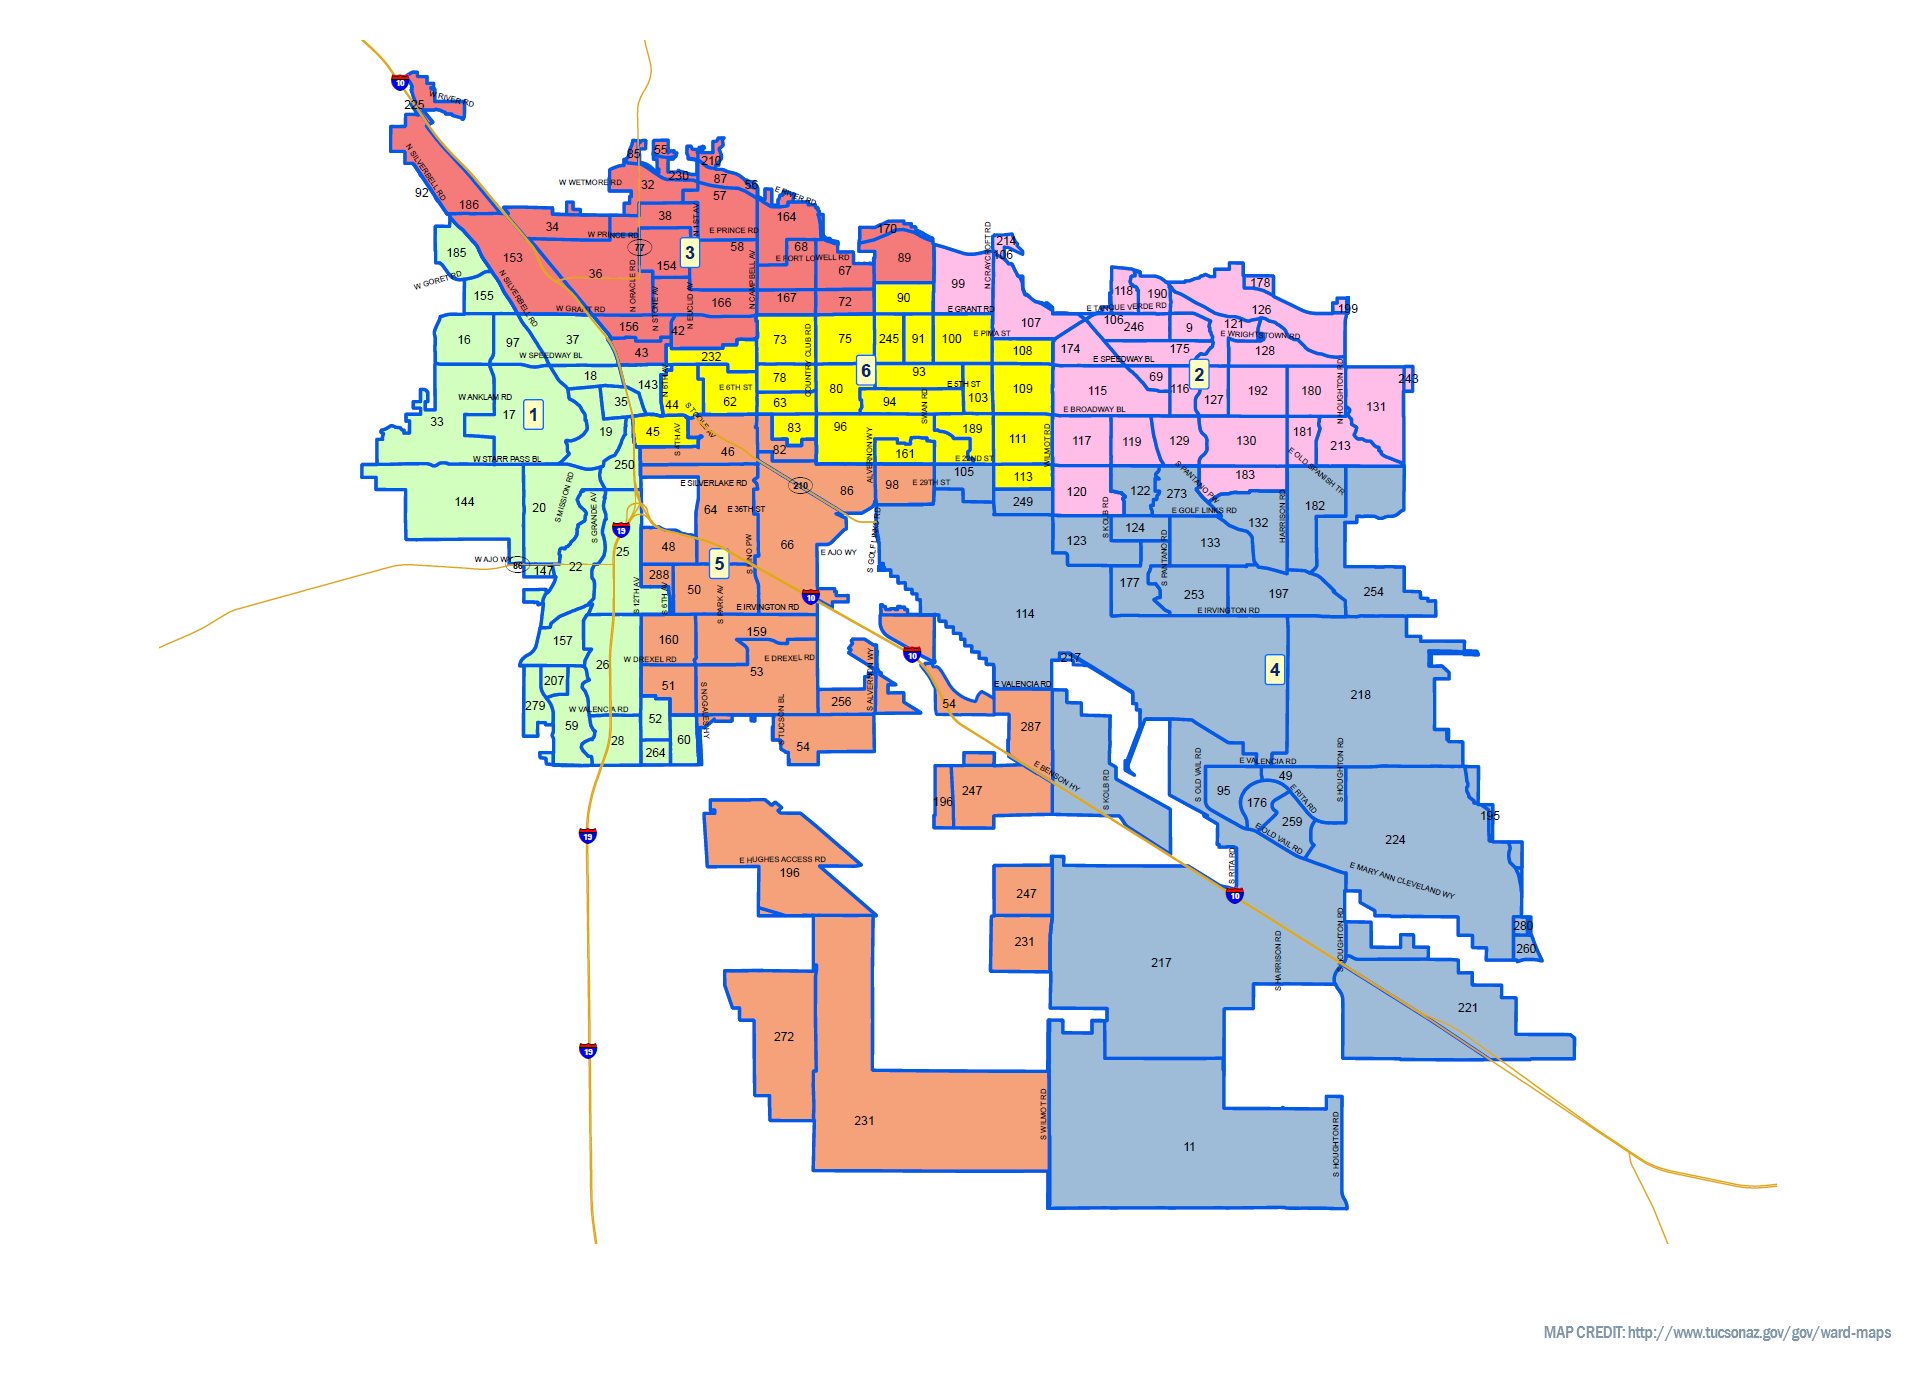 aurora zoning map with Up Ing Major Municipal Elections Contact Guide on Nellis Lv Boulevard besides 24020 as well Up ing major municipal elections contact guide together with White Lake Hunting Lodge additionally Auroraassociationofrealtors.